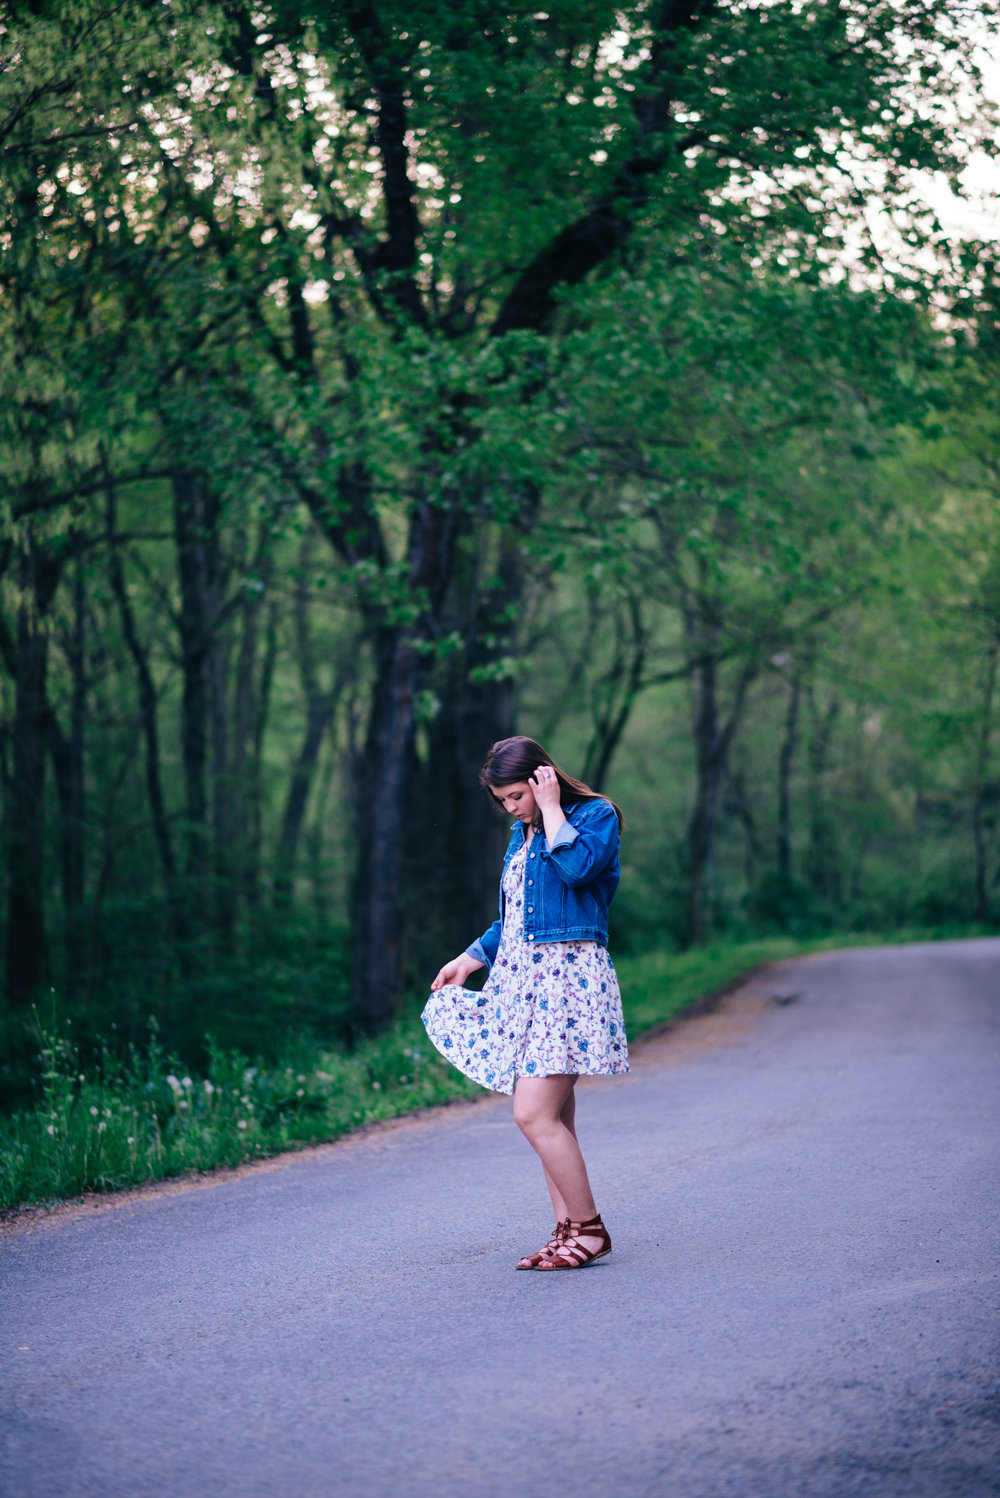 high school senior model twirling floral summer dress on a back country raos with trees